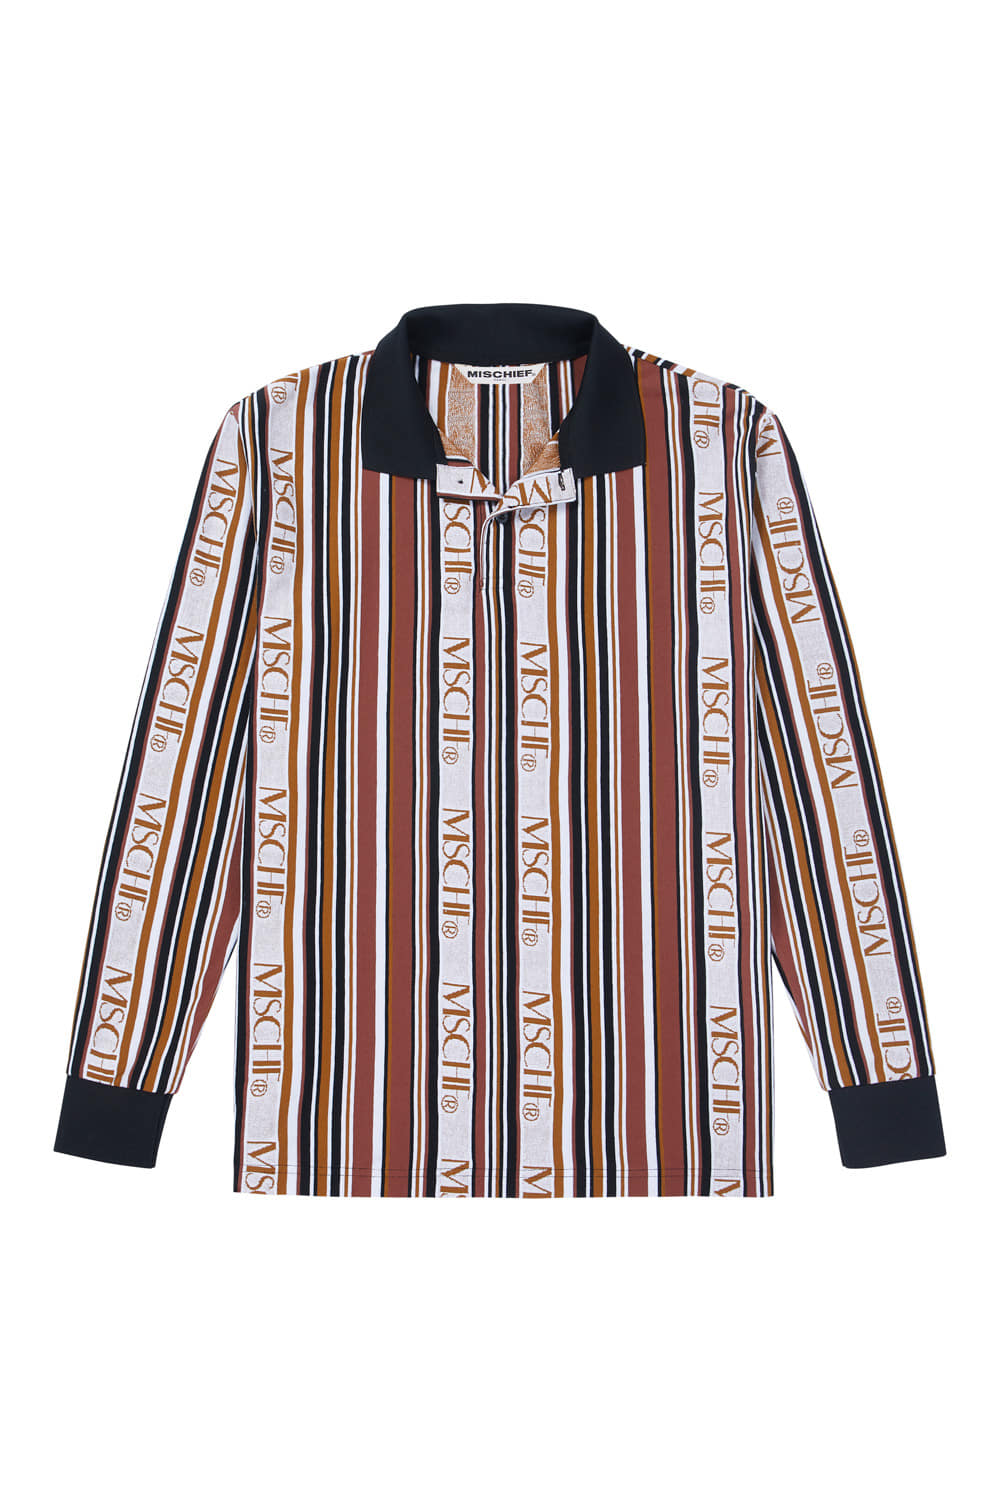 STRIPED LOGO COLLARED JERSEY_brown multi